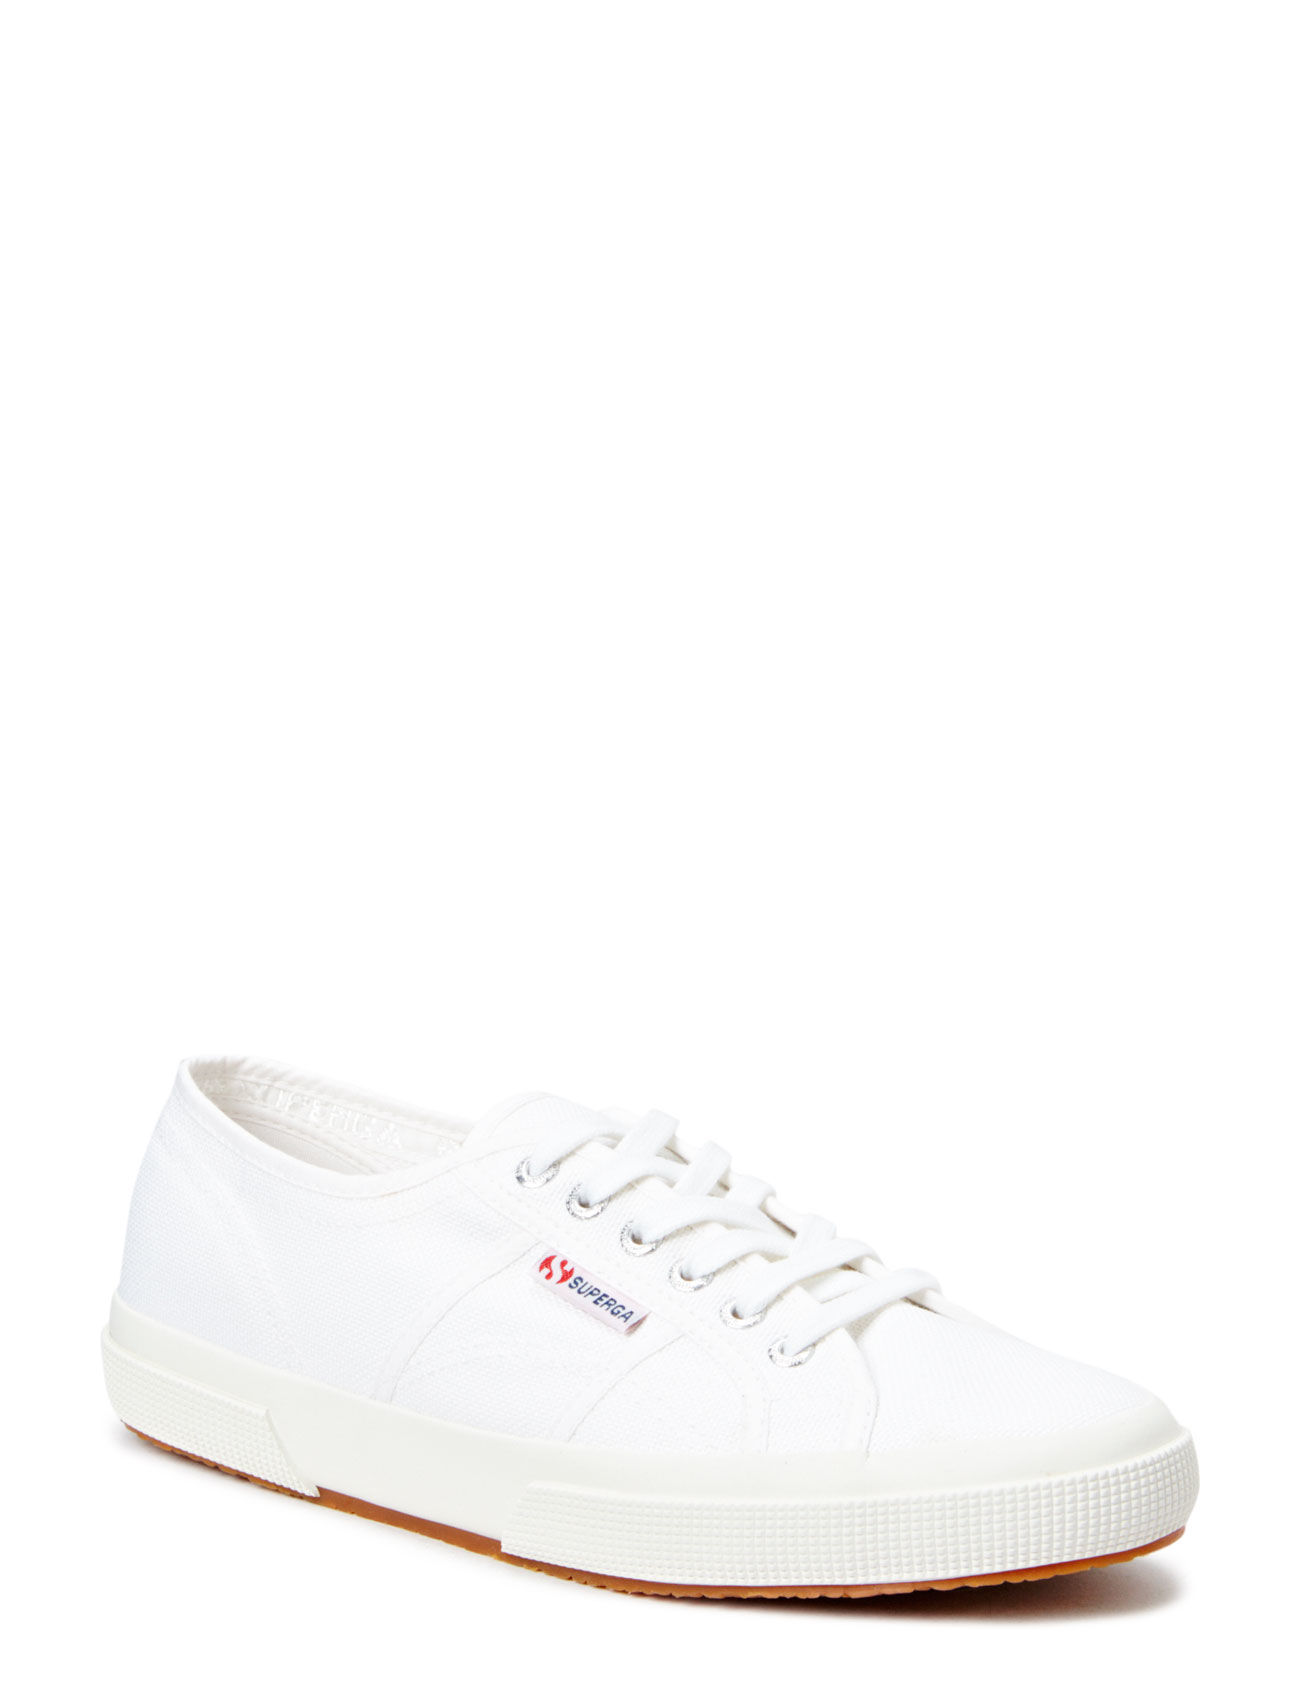 Superga 2750 Cotu Classic Superga Sneakers til Mænd i Sort